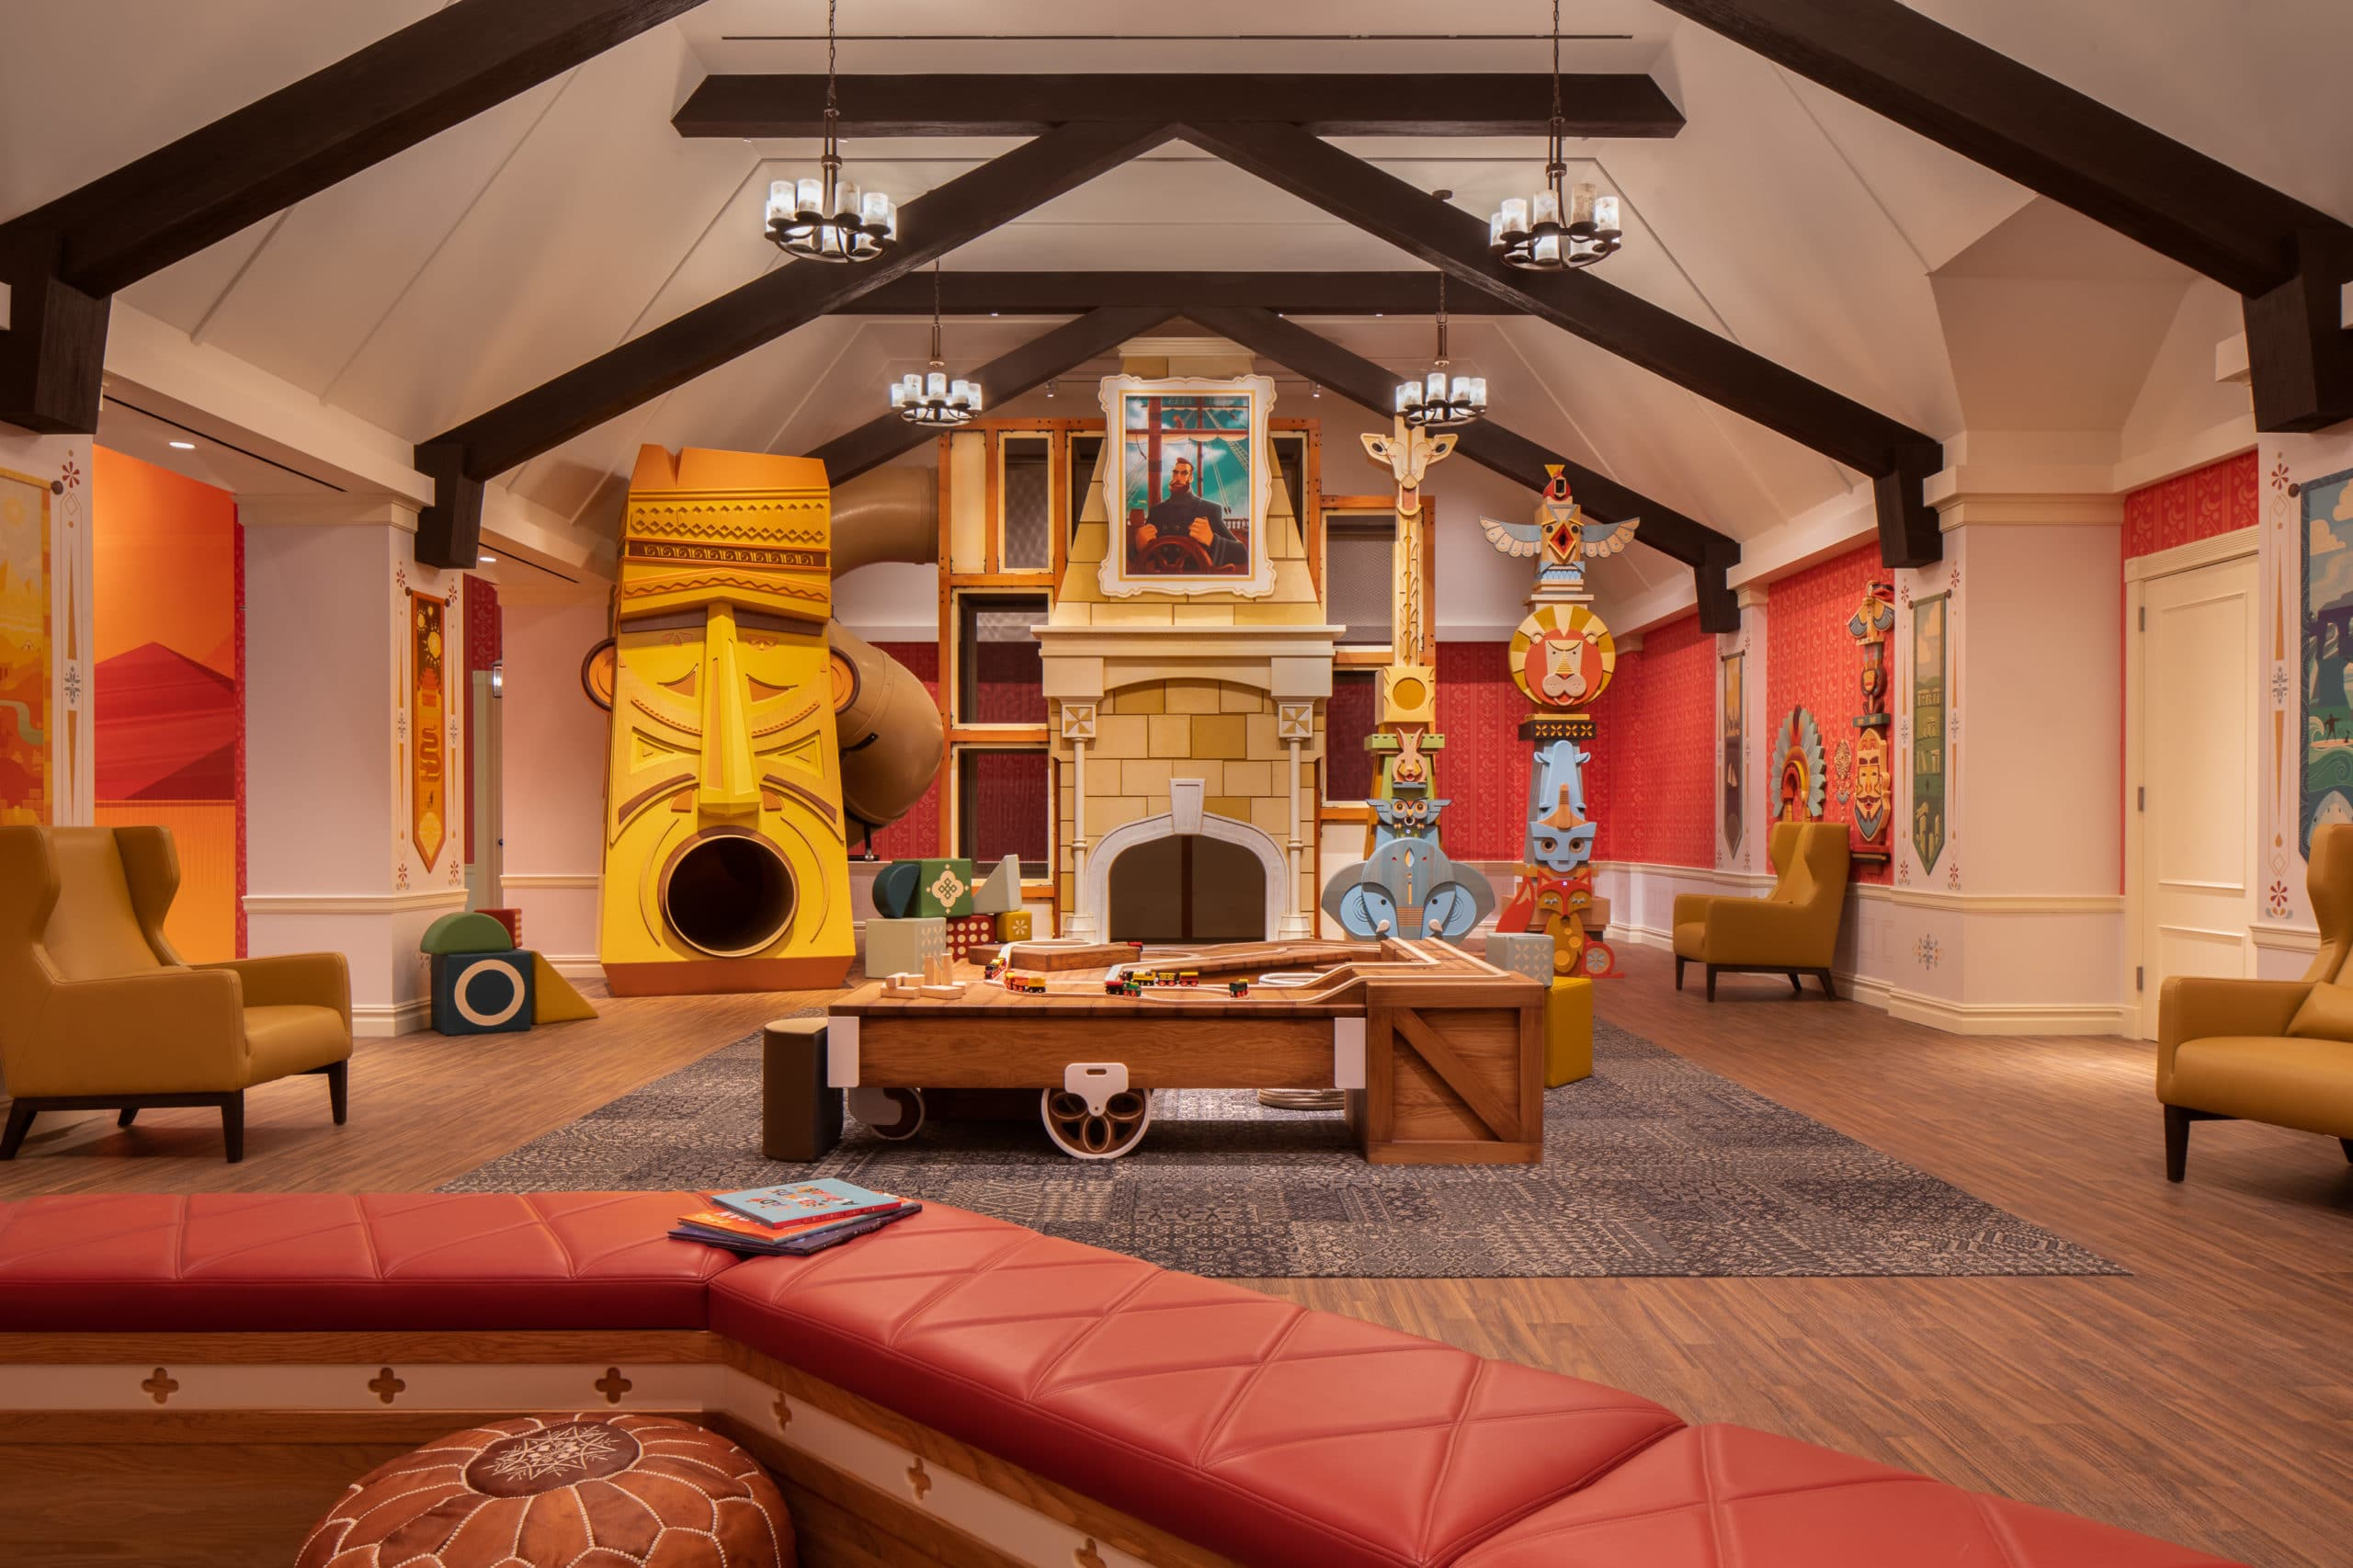 Playroom at Waterline Square luxury condos in New York. Large room with playhouse, slide, and wood brick play area.